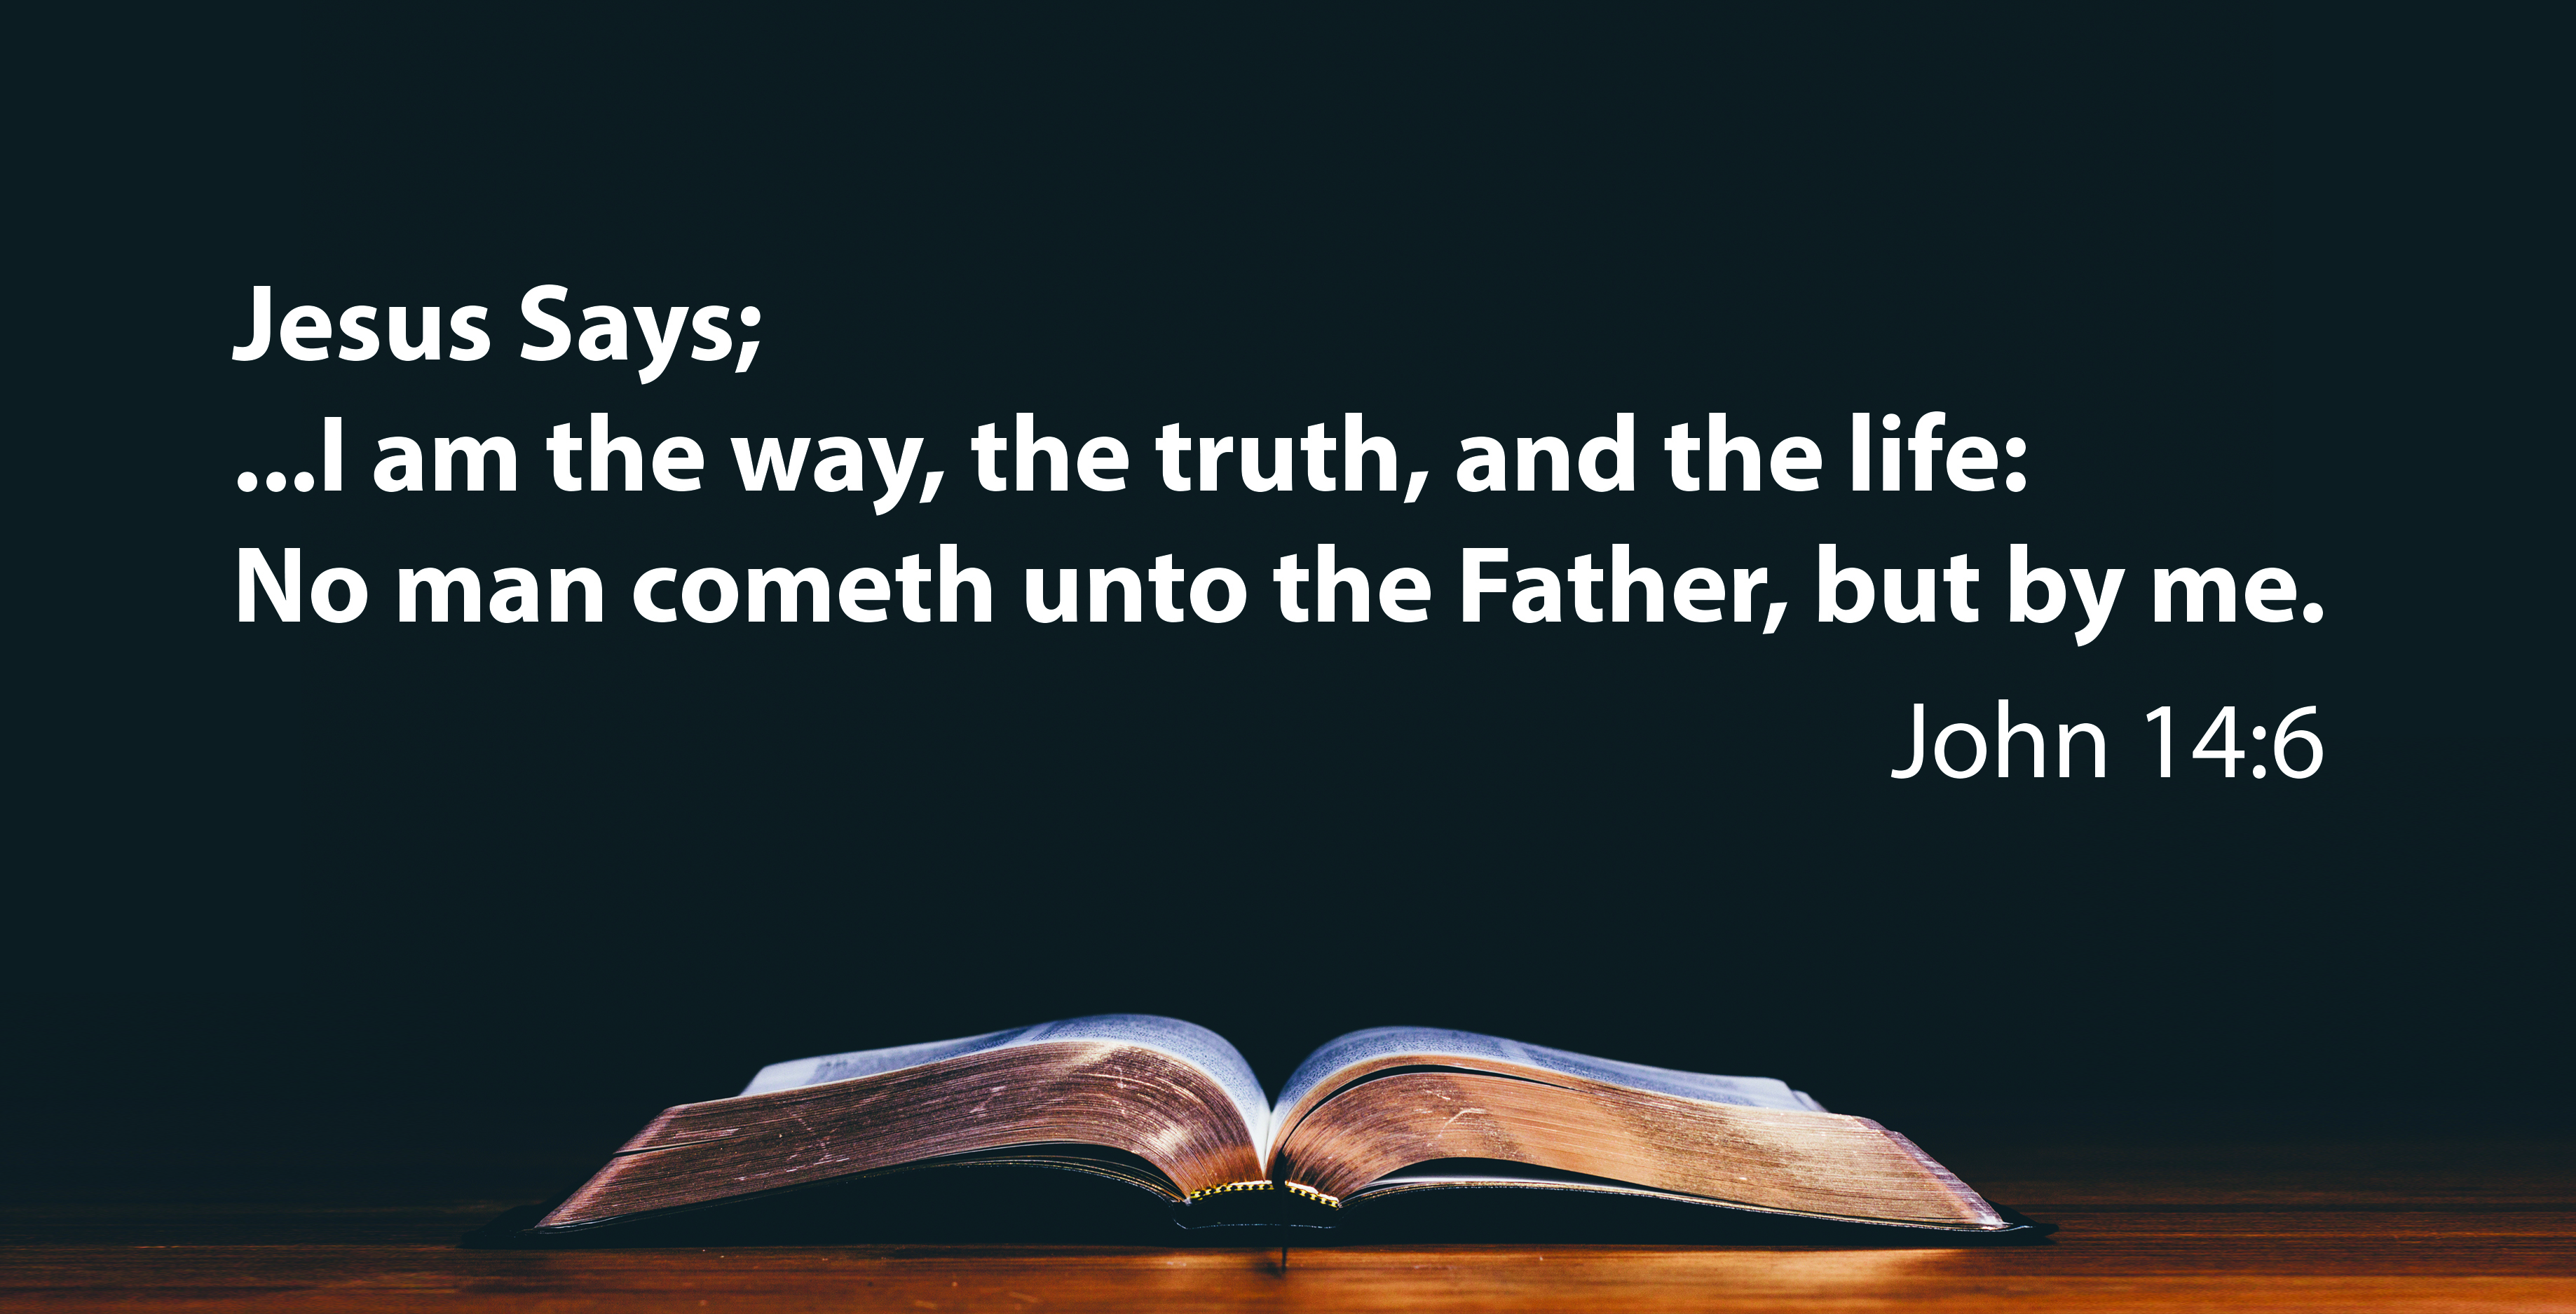 Perfect Do You Ever Think About Heaven And Maybe, How Does A Person Get There?  Jesus Said I Am The Way, The Truth And The Lift: No Man Cometh Unto The  Father But ...